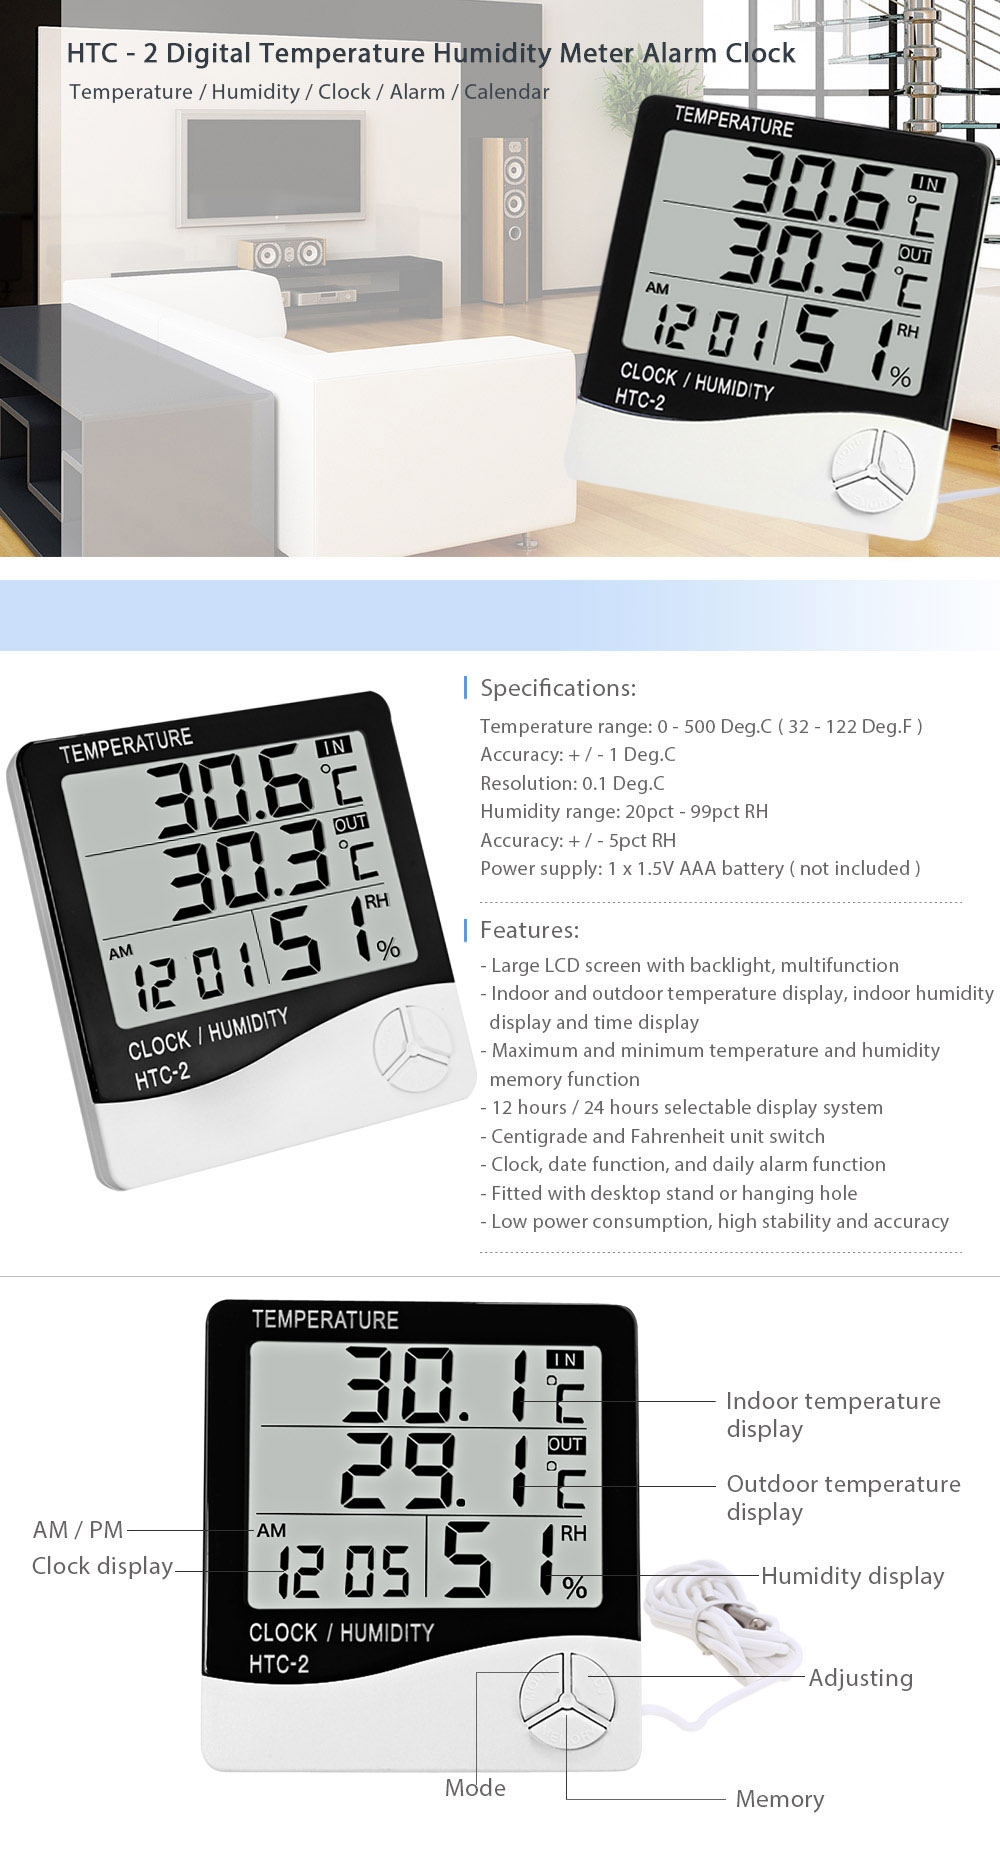 HTC - 2 Digital Electronic Temperature Humidity Meter Thermometer Alarm Clock for Indoor Outdoor